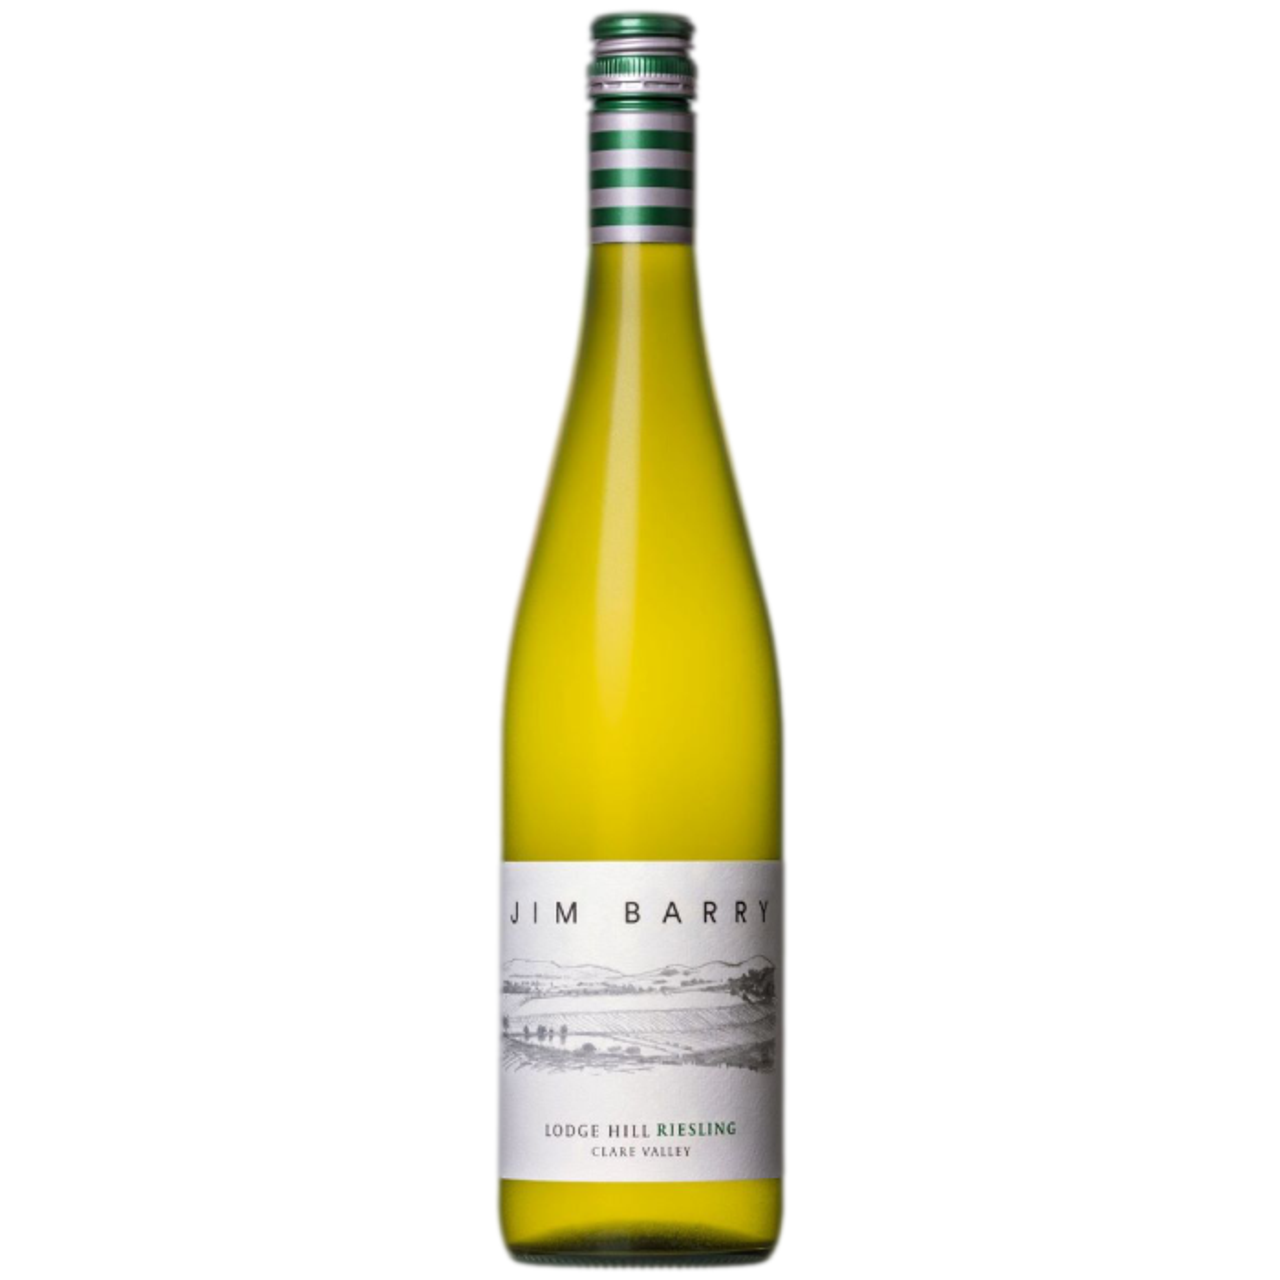 Jim Barry, Riesling The Lodge Hill Clare Valley 2017